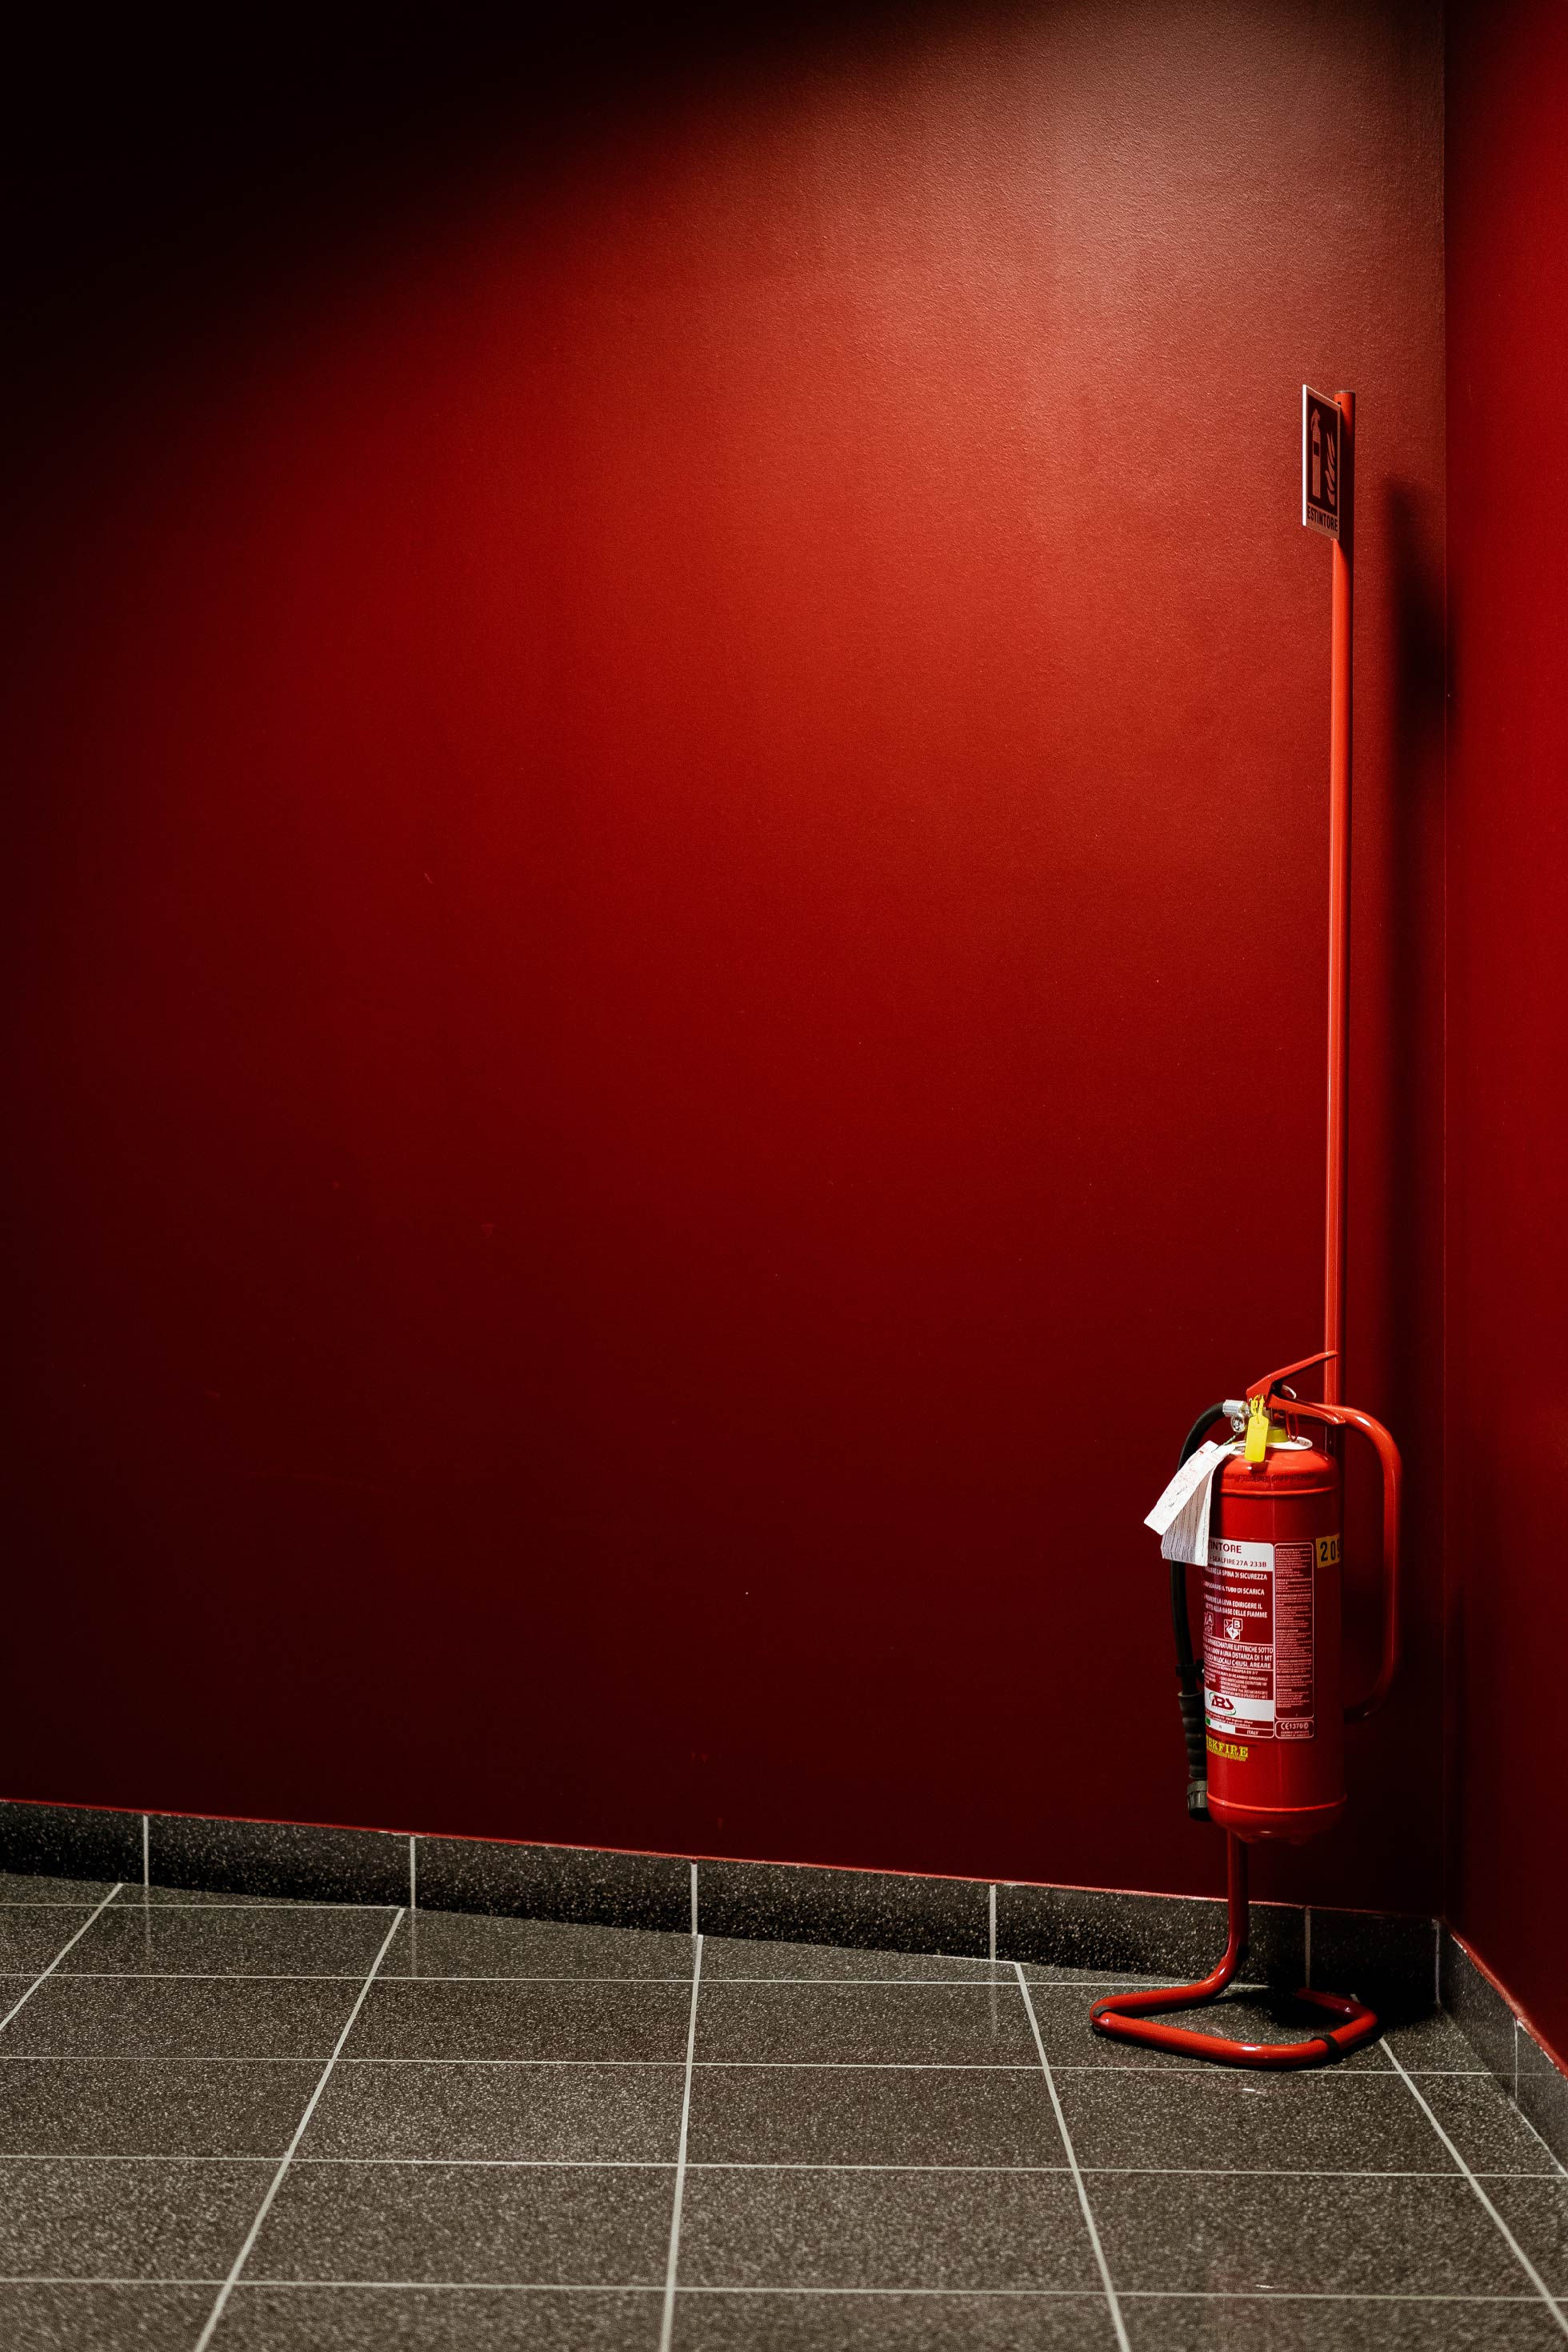 red fire hydrant next to wall